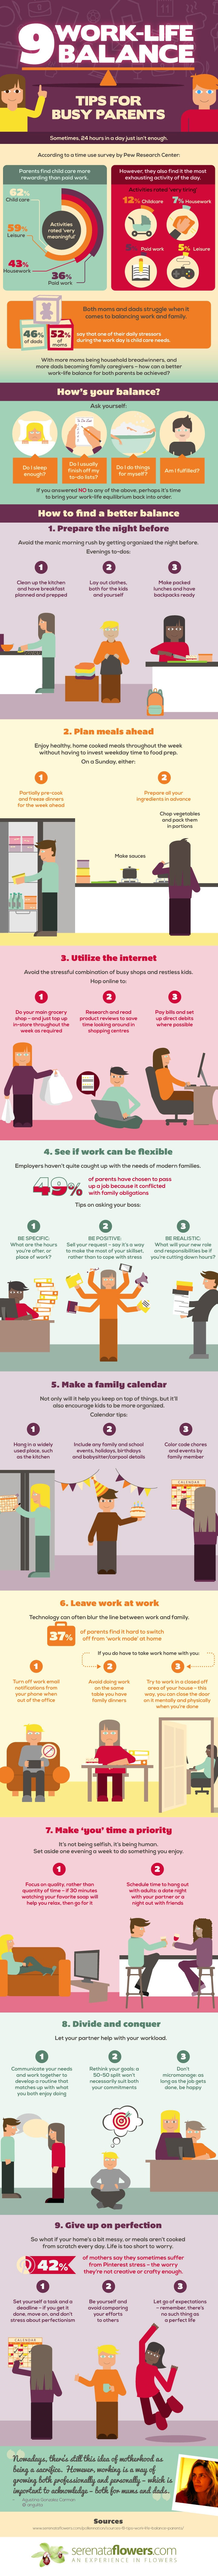 work-life-balance-tips-busy-working-parents